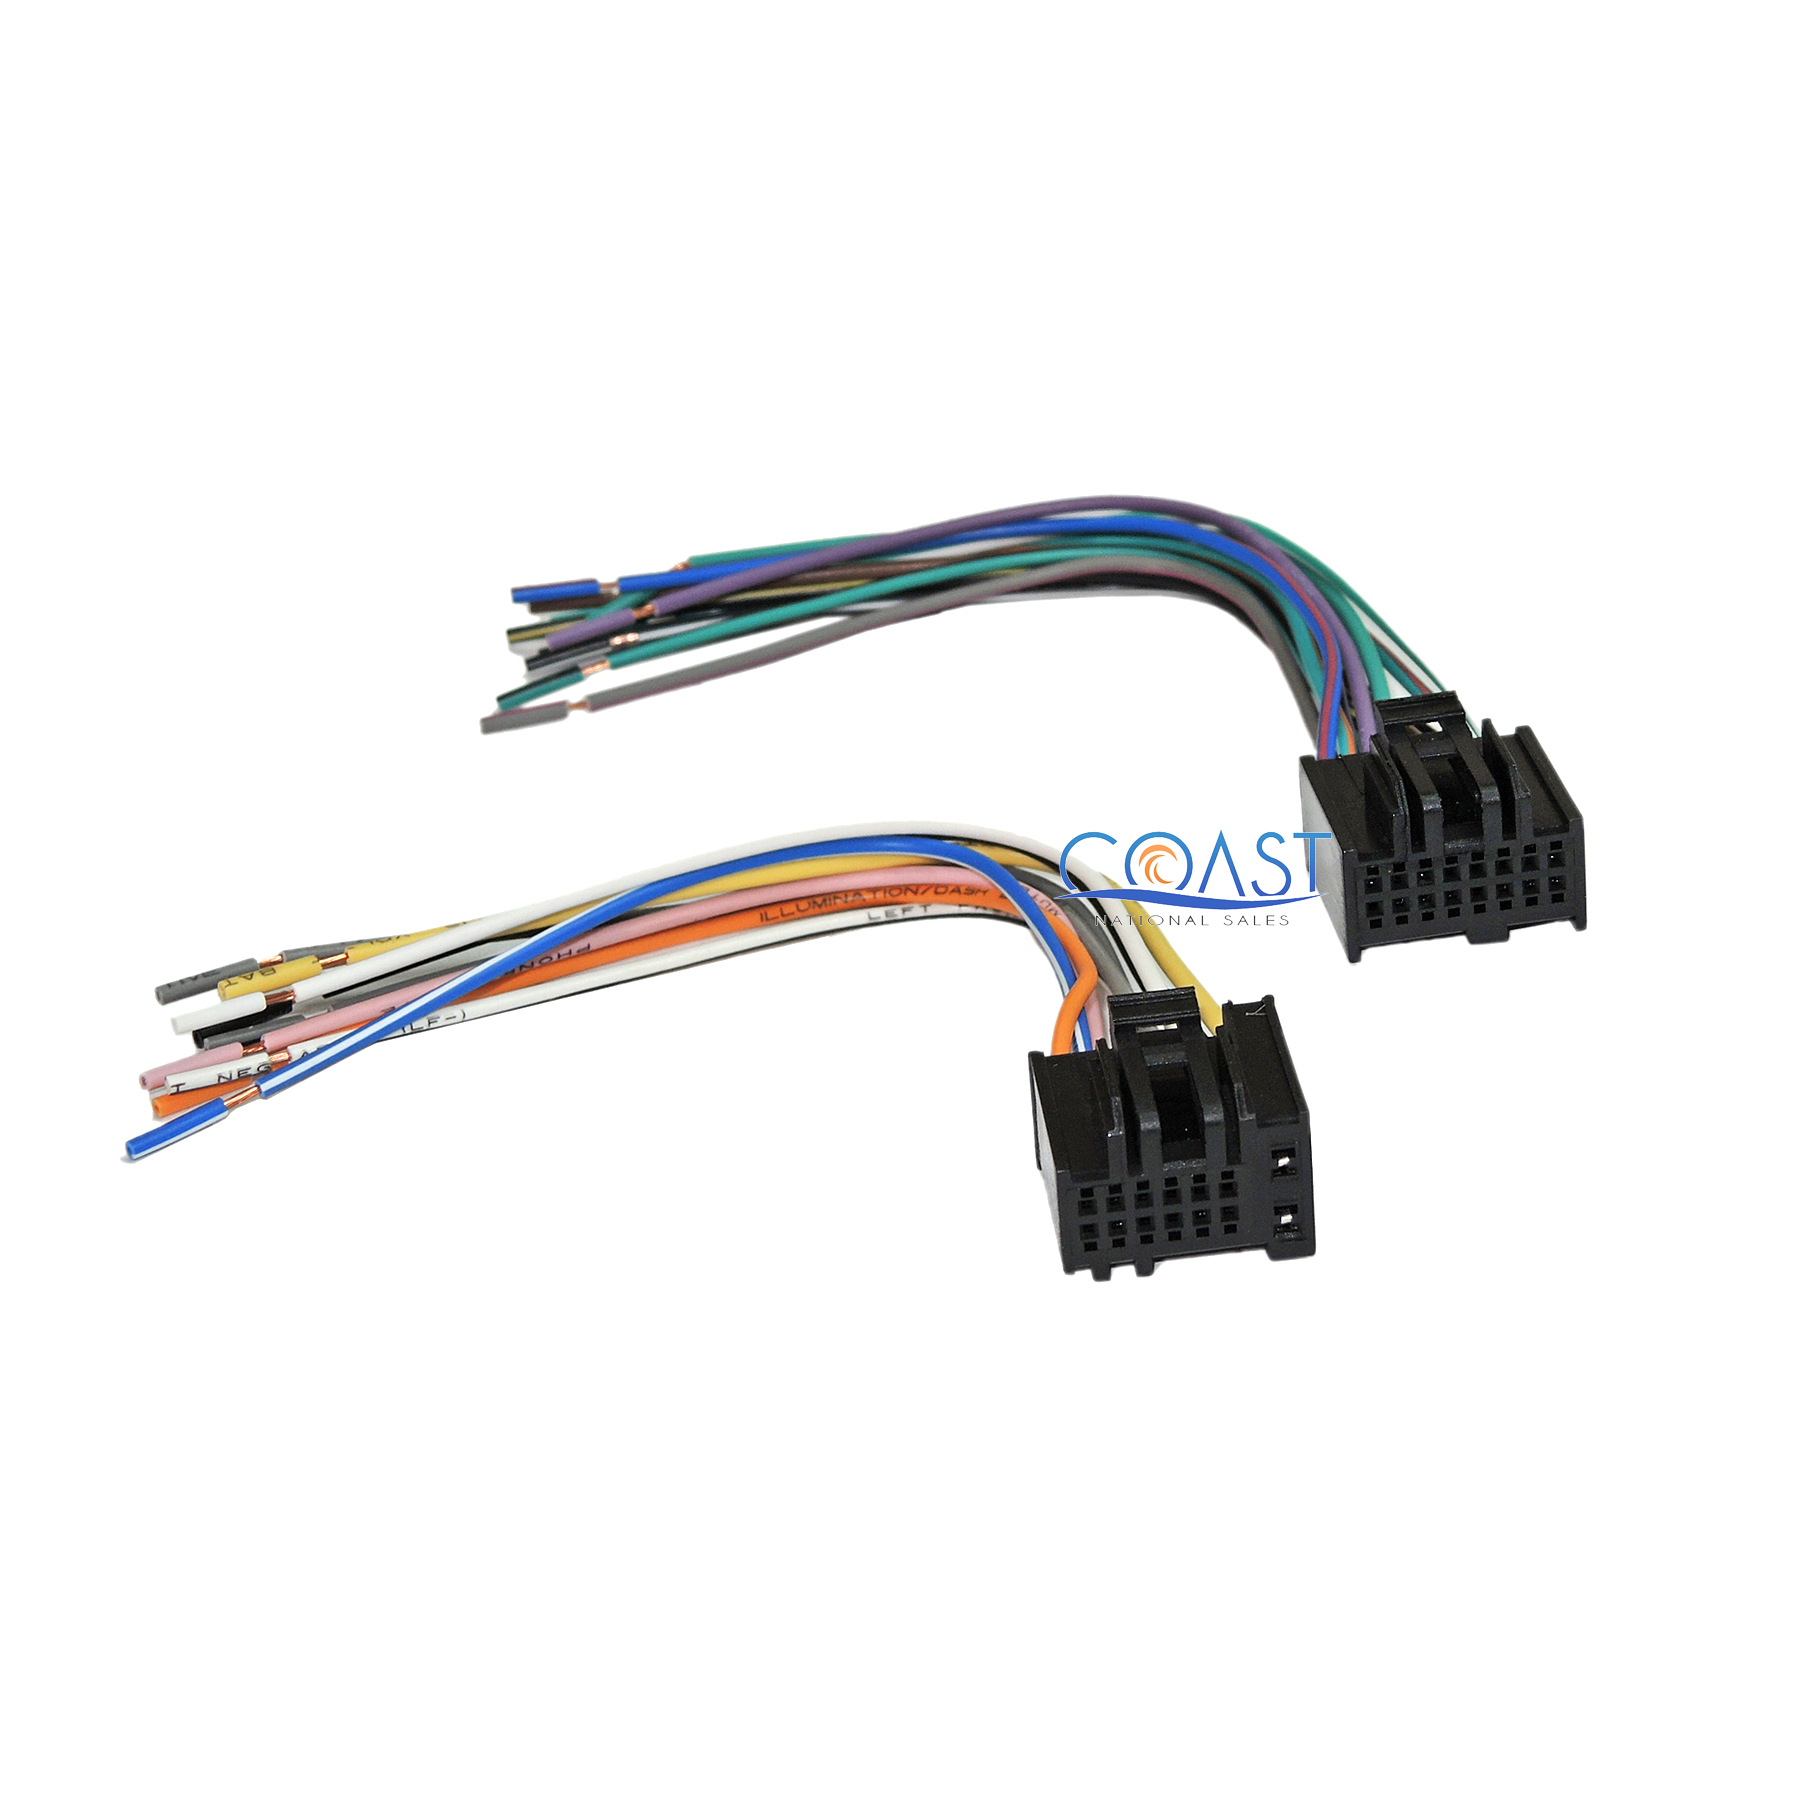 2003 Chevy Silverado Radio Wiring Harness Color Code Library Diagram Car Stereo Wire To Factory For Gm Adapter